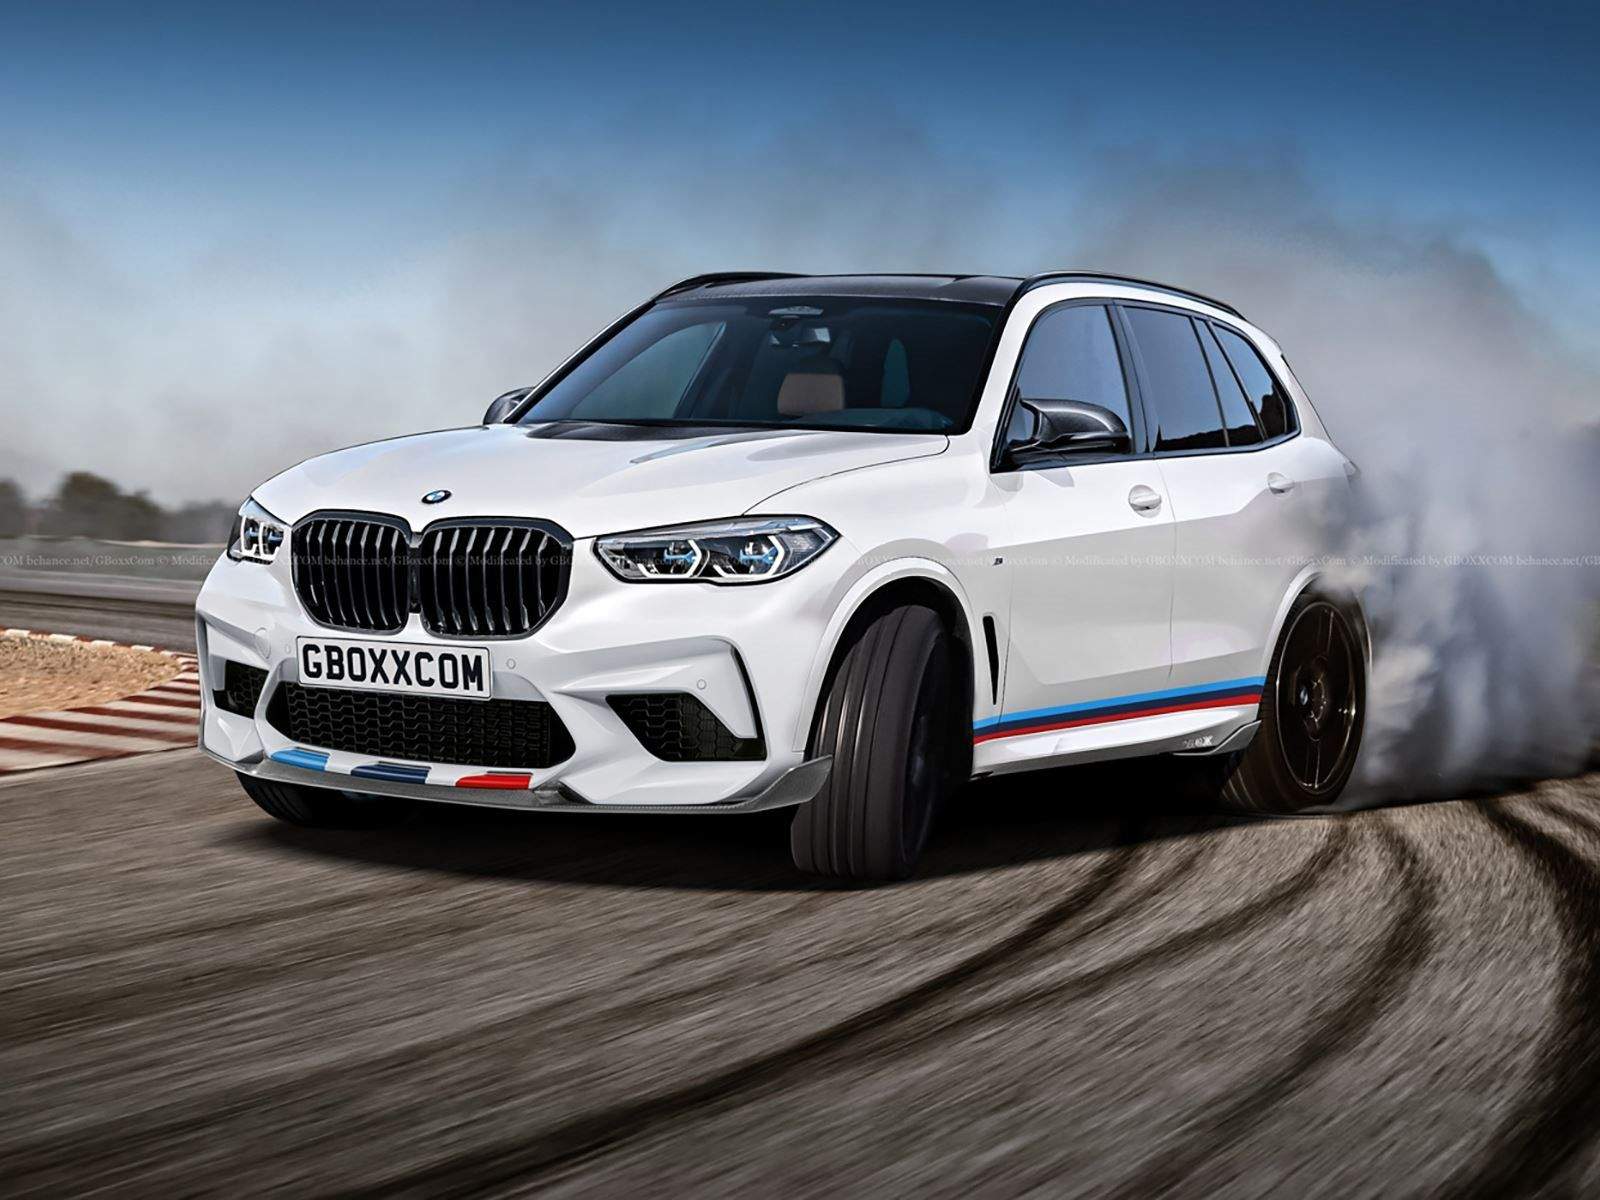 The 2020 Bmw X5 M Will Be An Absolute Beast The X5 M Will Arrive In The Next Year Or So Here S What It Might Look Like In 2020 Bmw X5